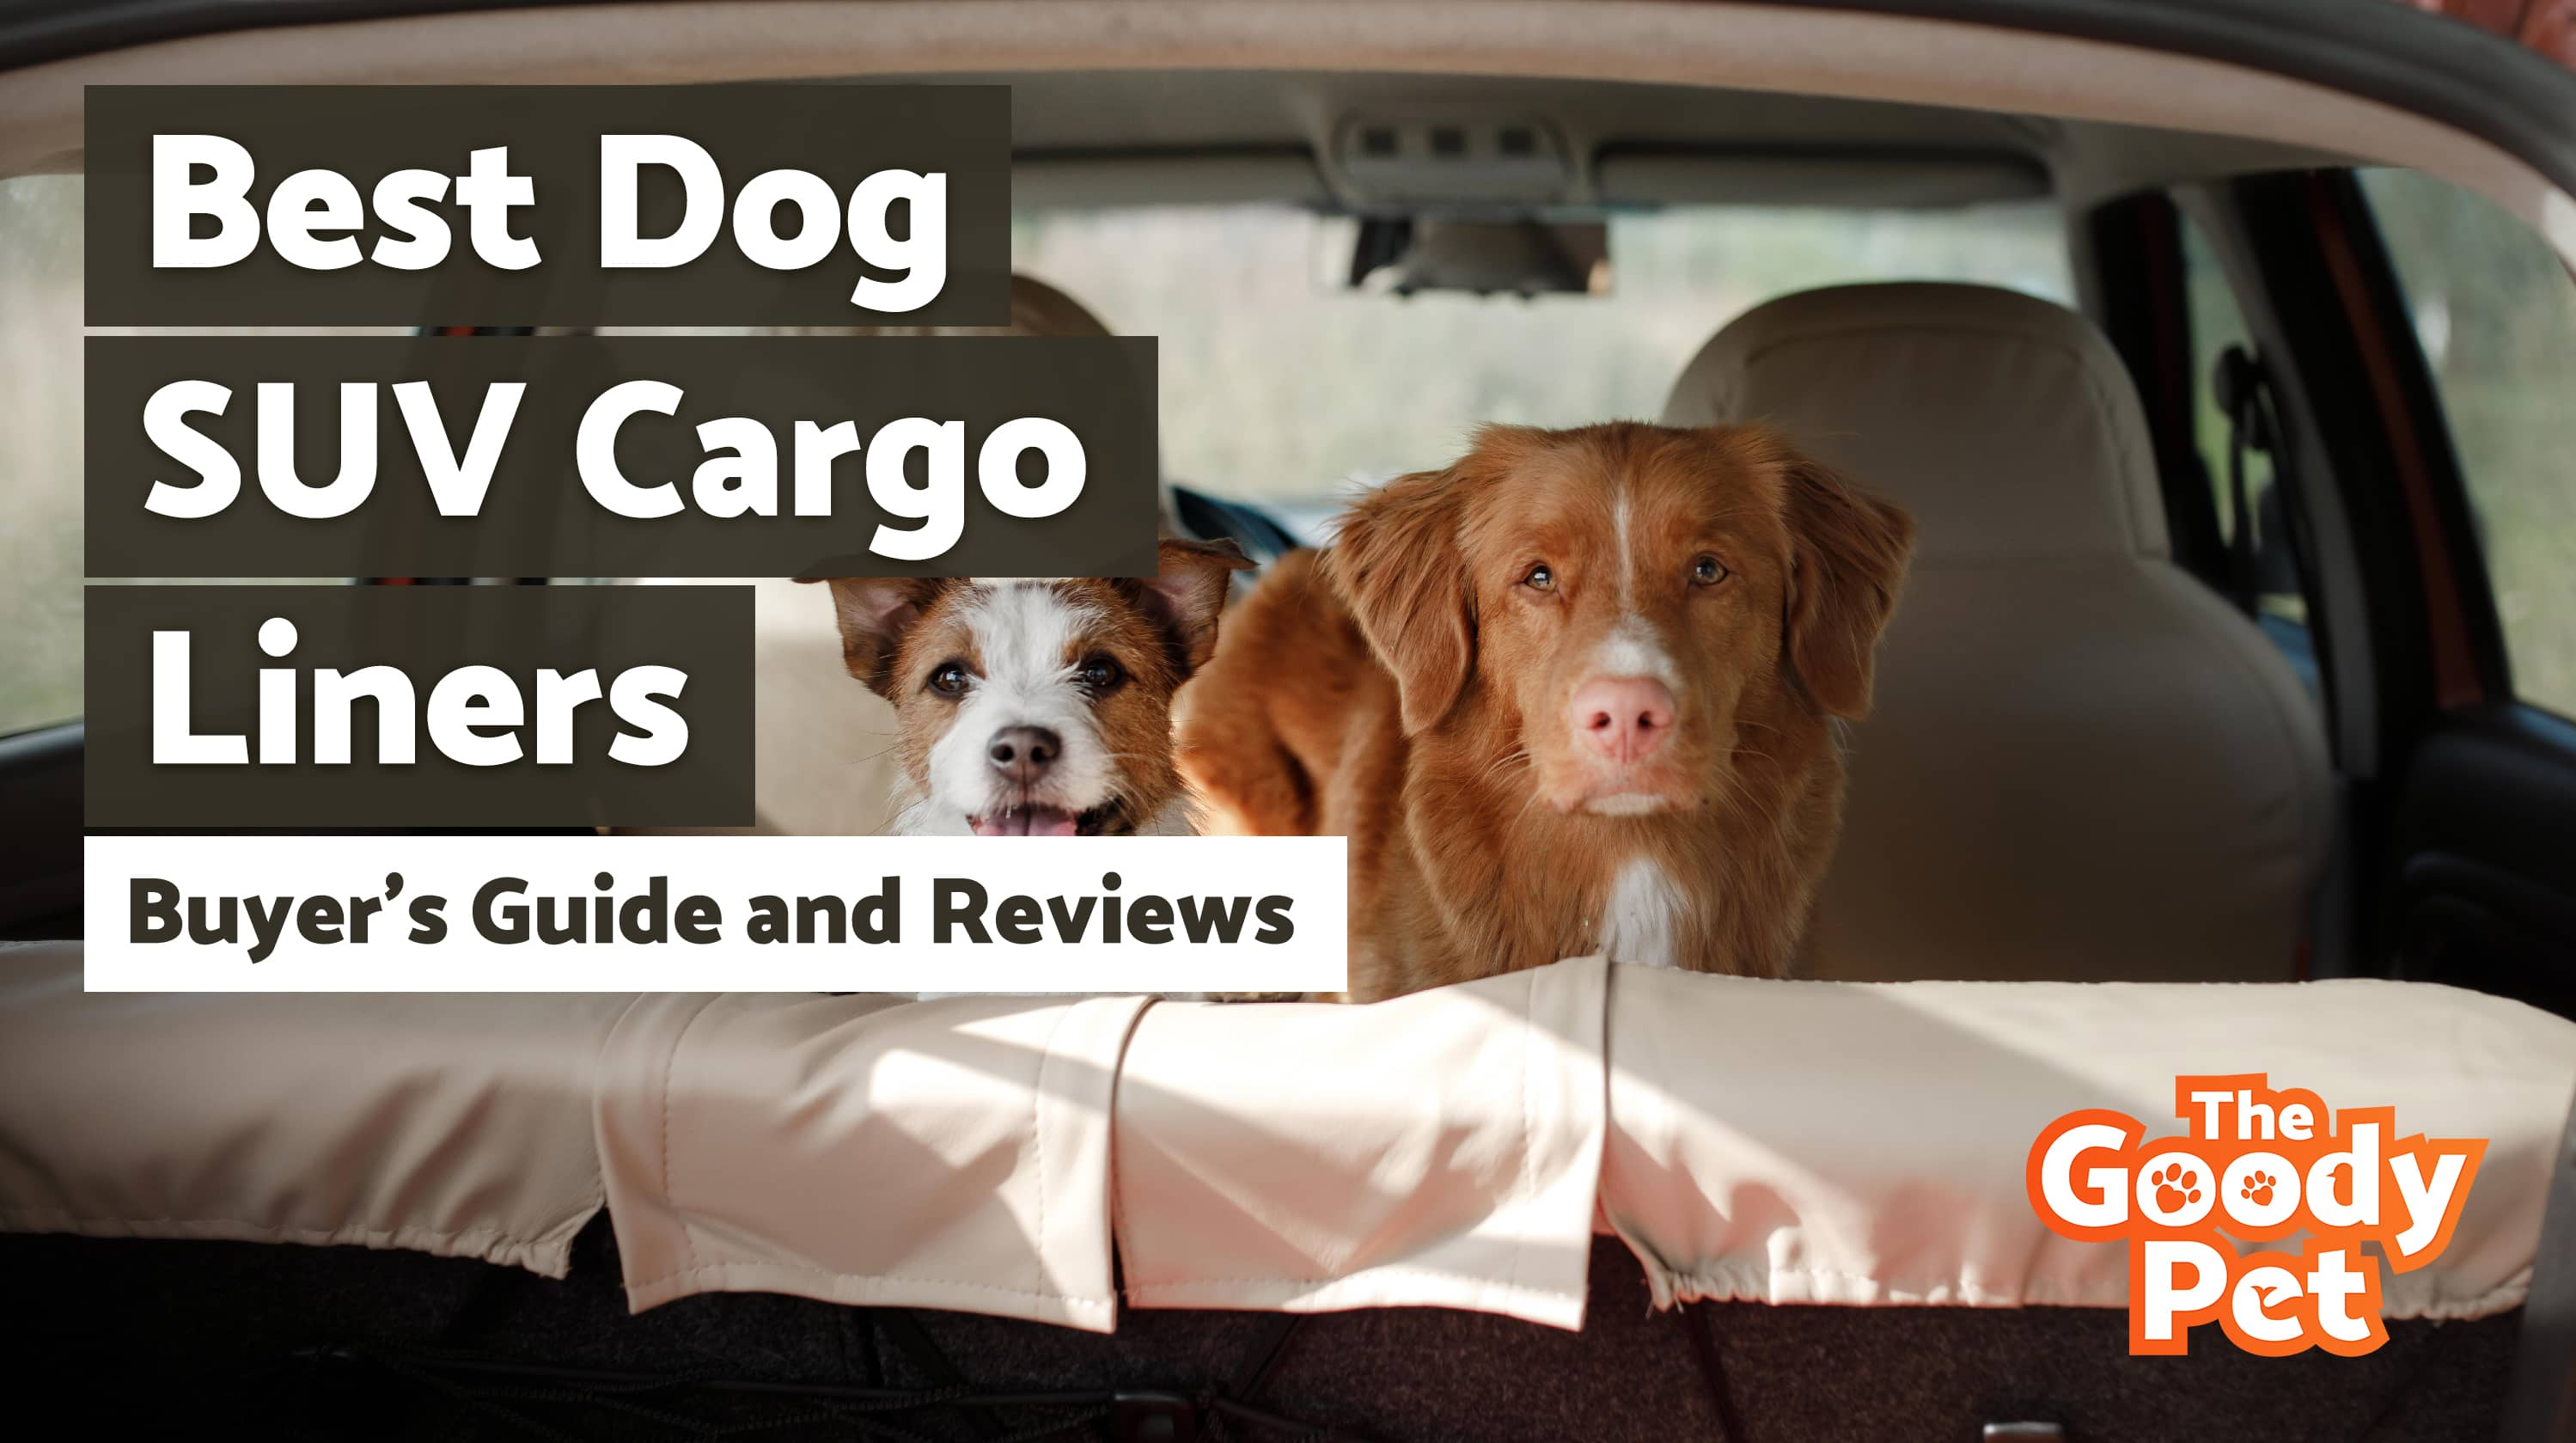 Best Dog SUV Cargo Liners For Car Rides – Our 2019 Reviews & Top Picks